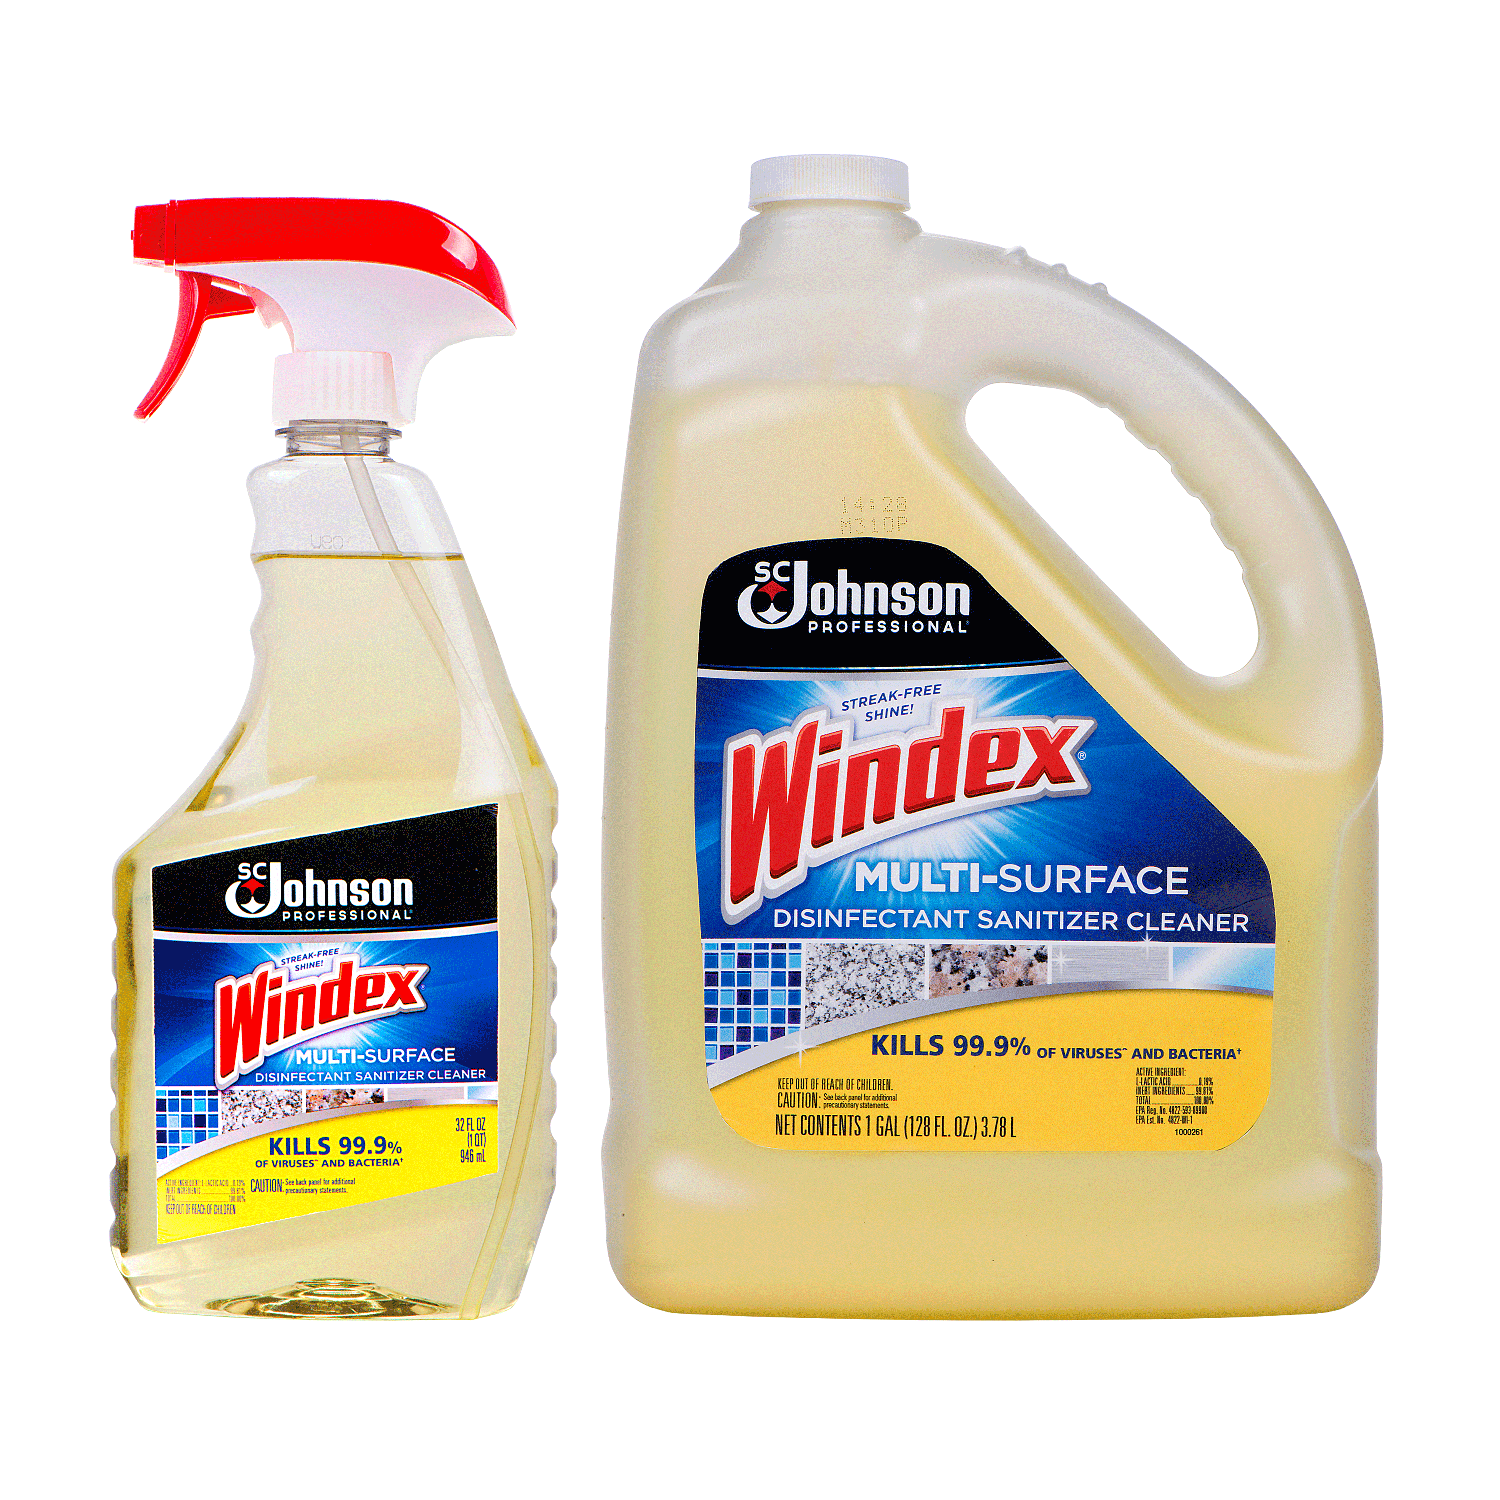 composite-page-thumbnail-windex-multi-surface-disinfectant-cleaners